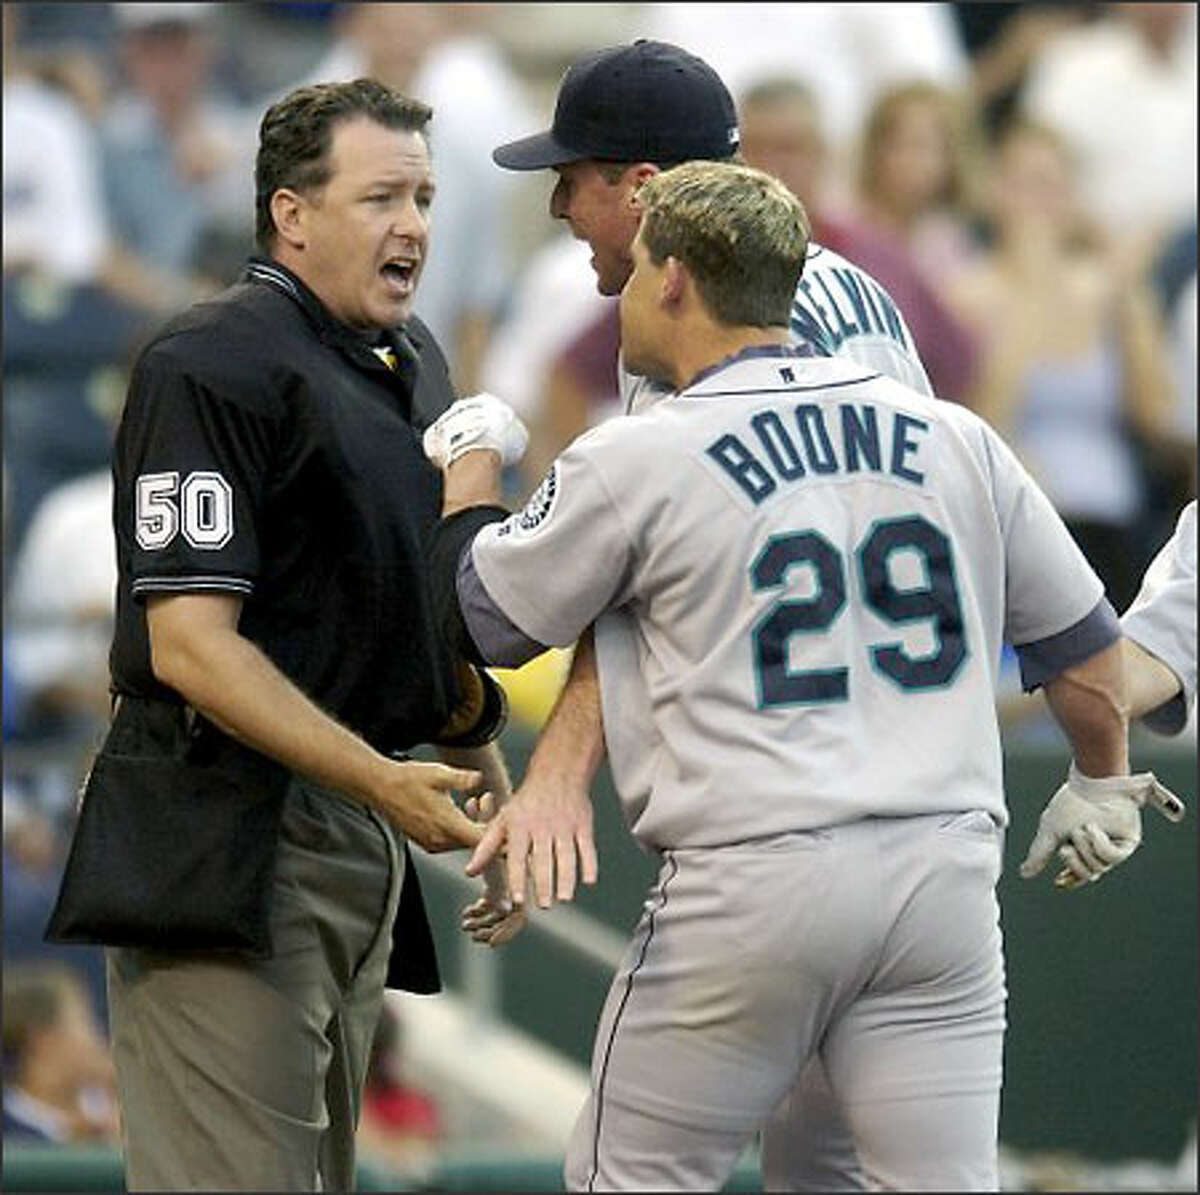 Mariners second baseman Bret Boone (29) and manager Bob Melvin argue with umpire Paul Emmel after Boone was ejected in the first inning against the Kansas City Royals. Boone, who struck out to end the inning, was ejected after he threw his bat and helmet while leaving the plate.